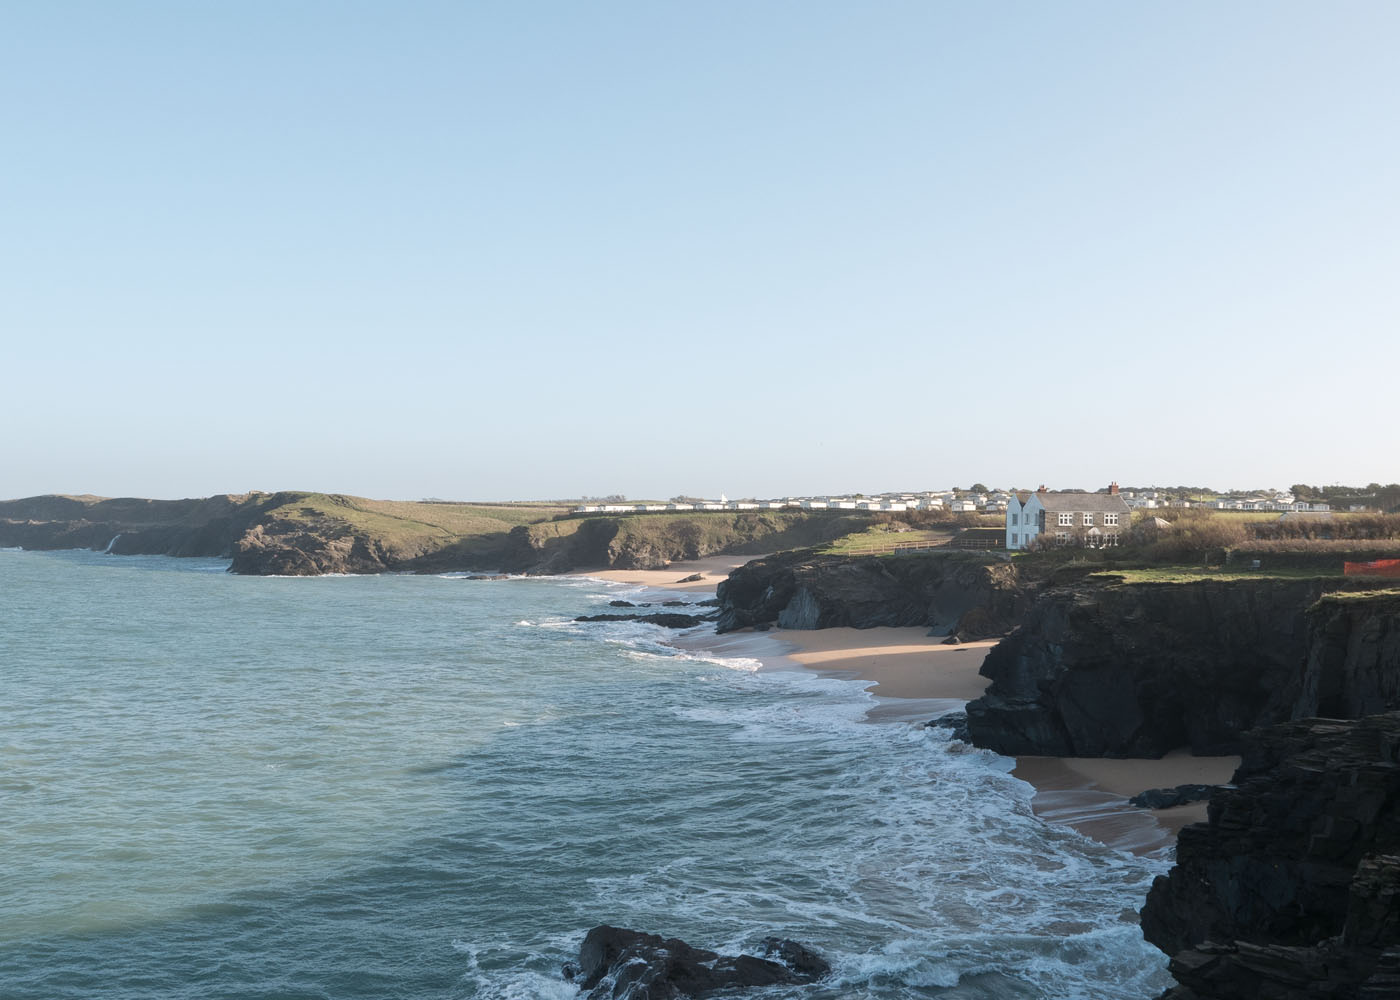 Looking towards Mother Iveys Bay